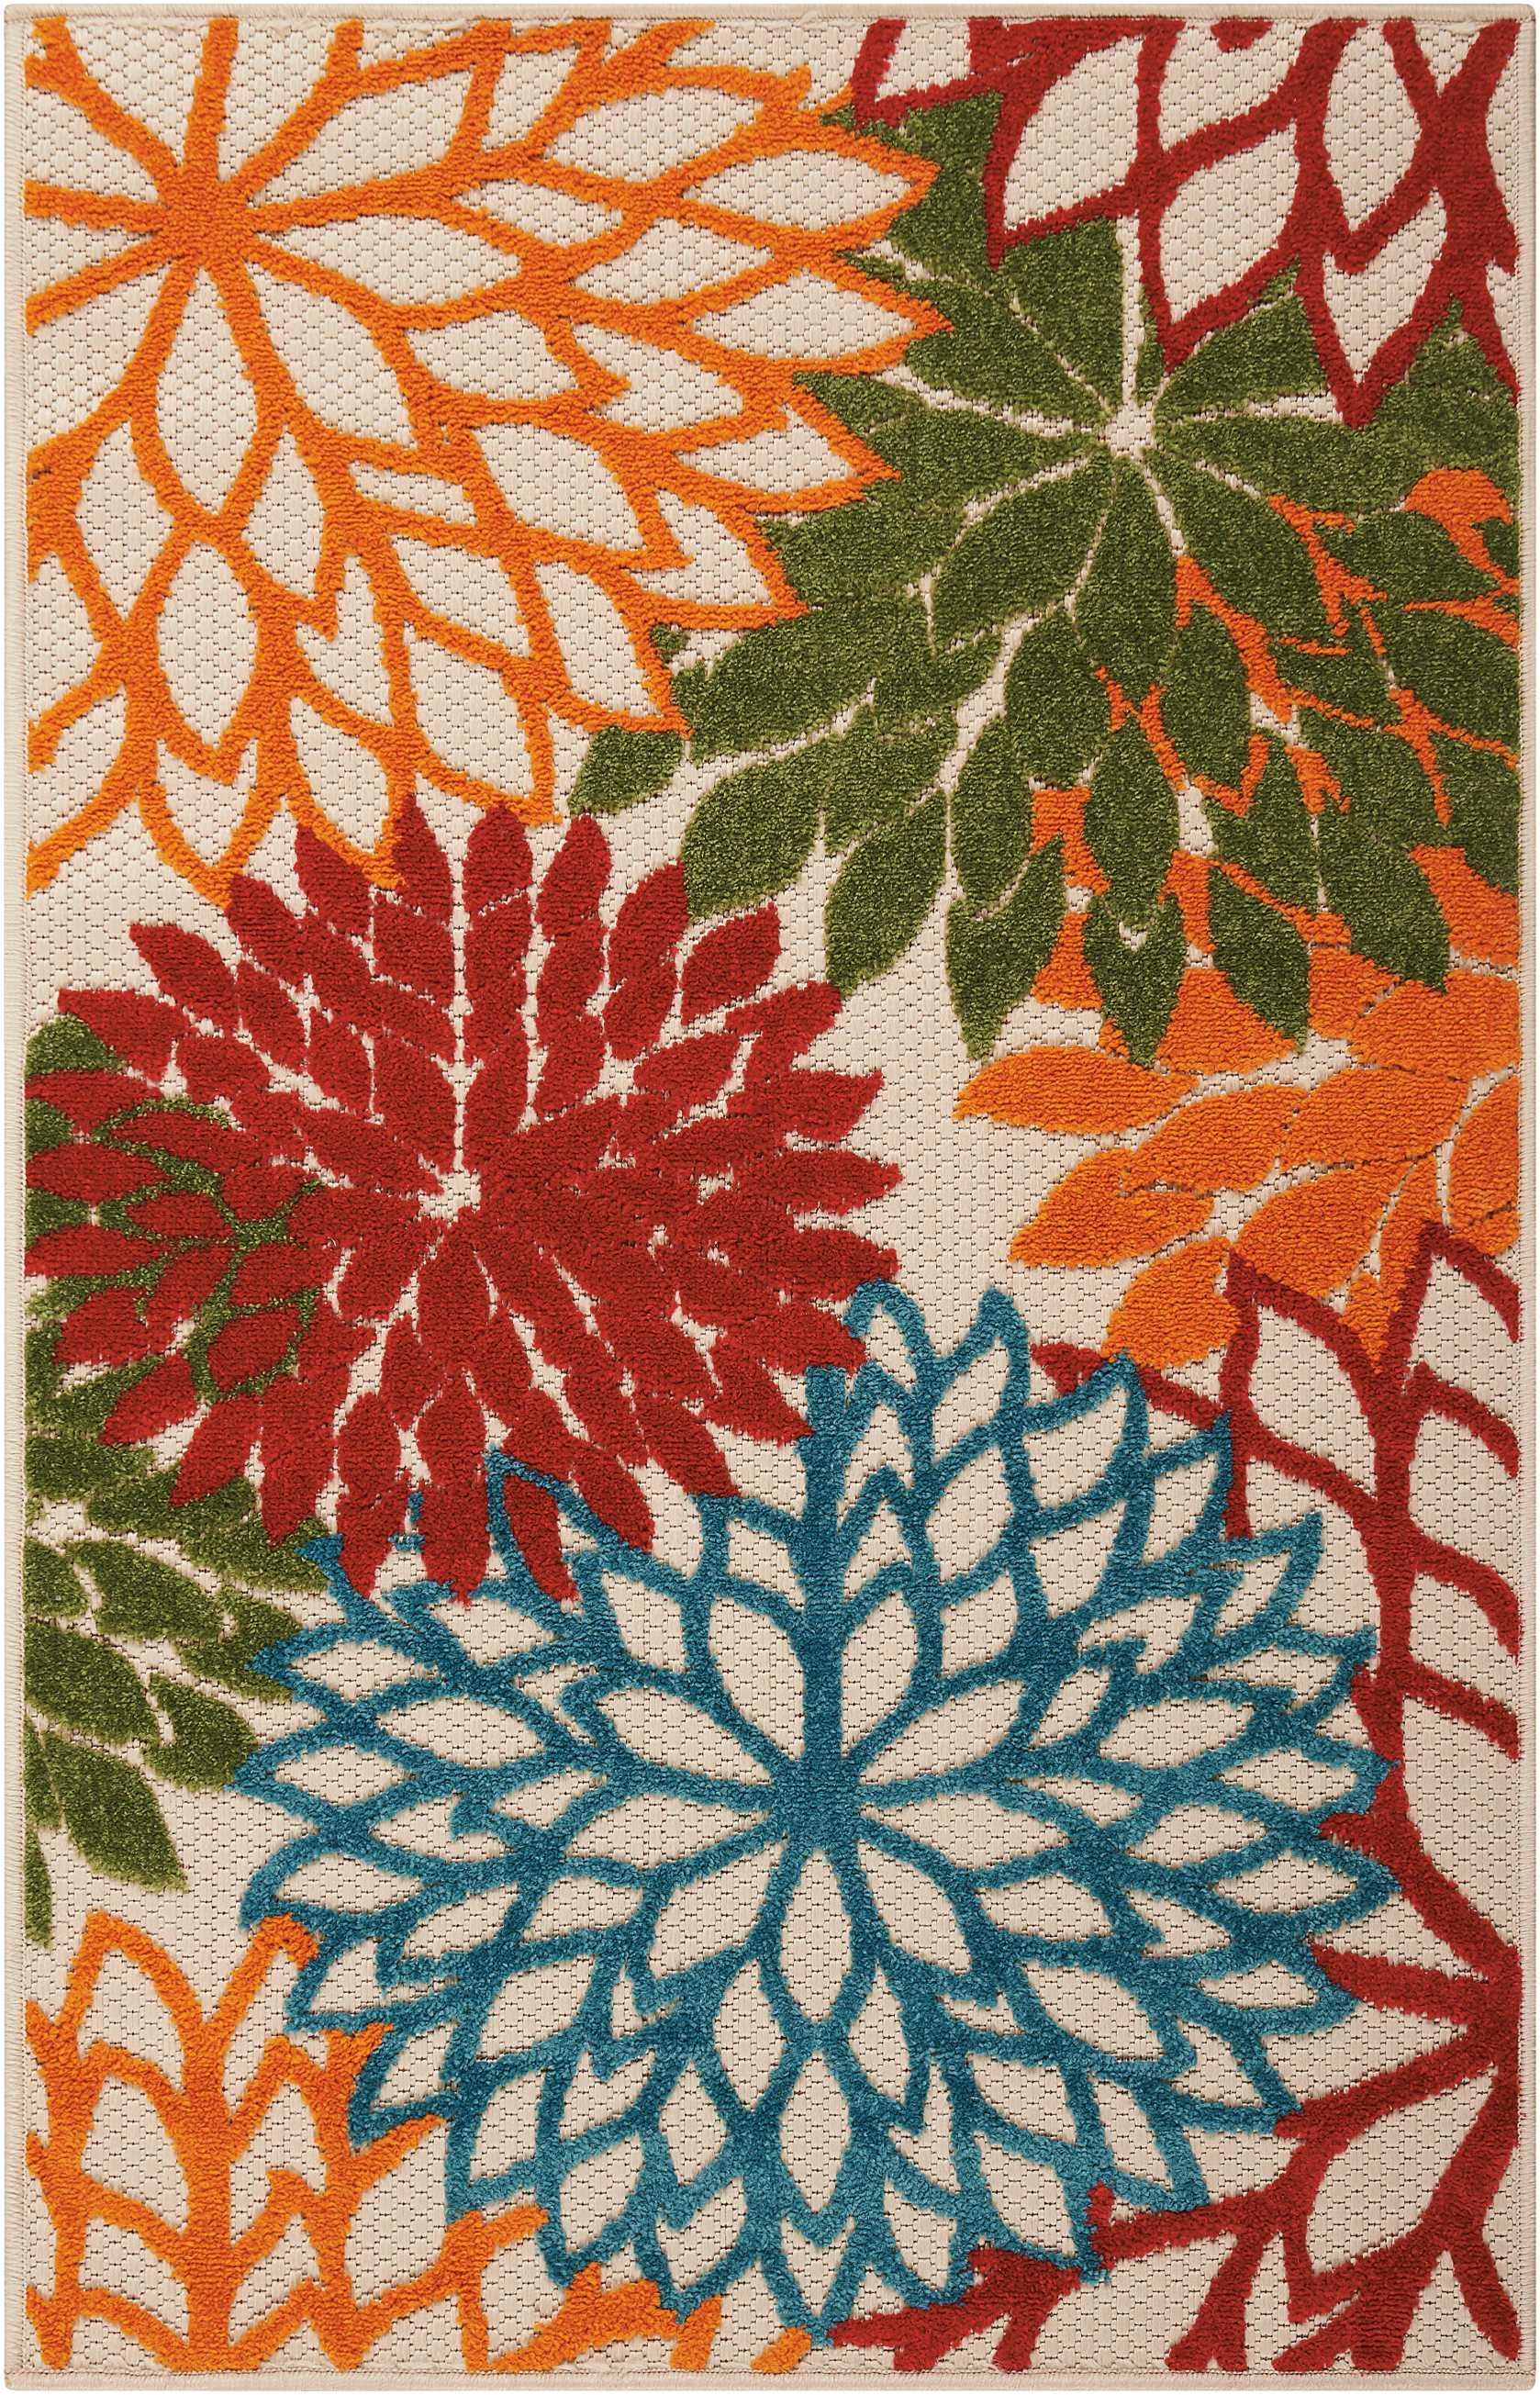 Aloha ALH05 Floral Indoor Outdoor Rug by Nourison by Nourison